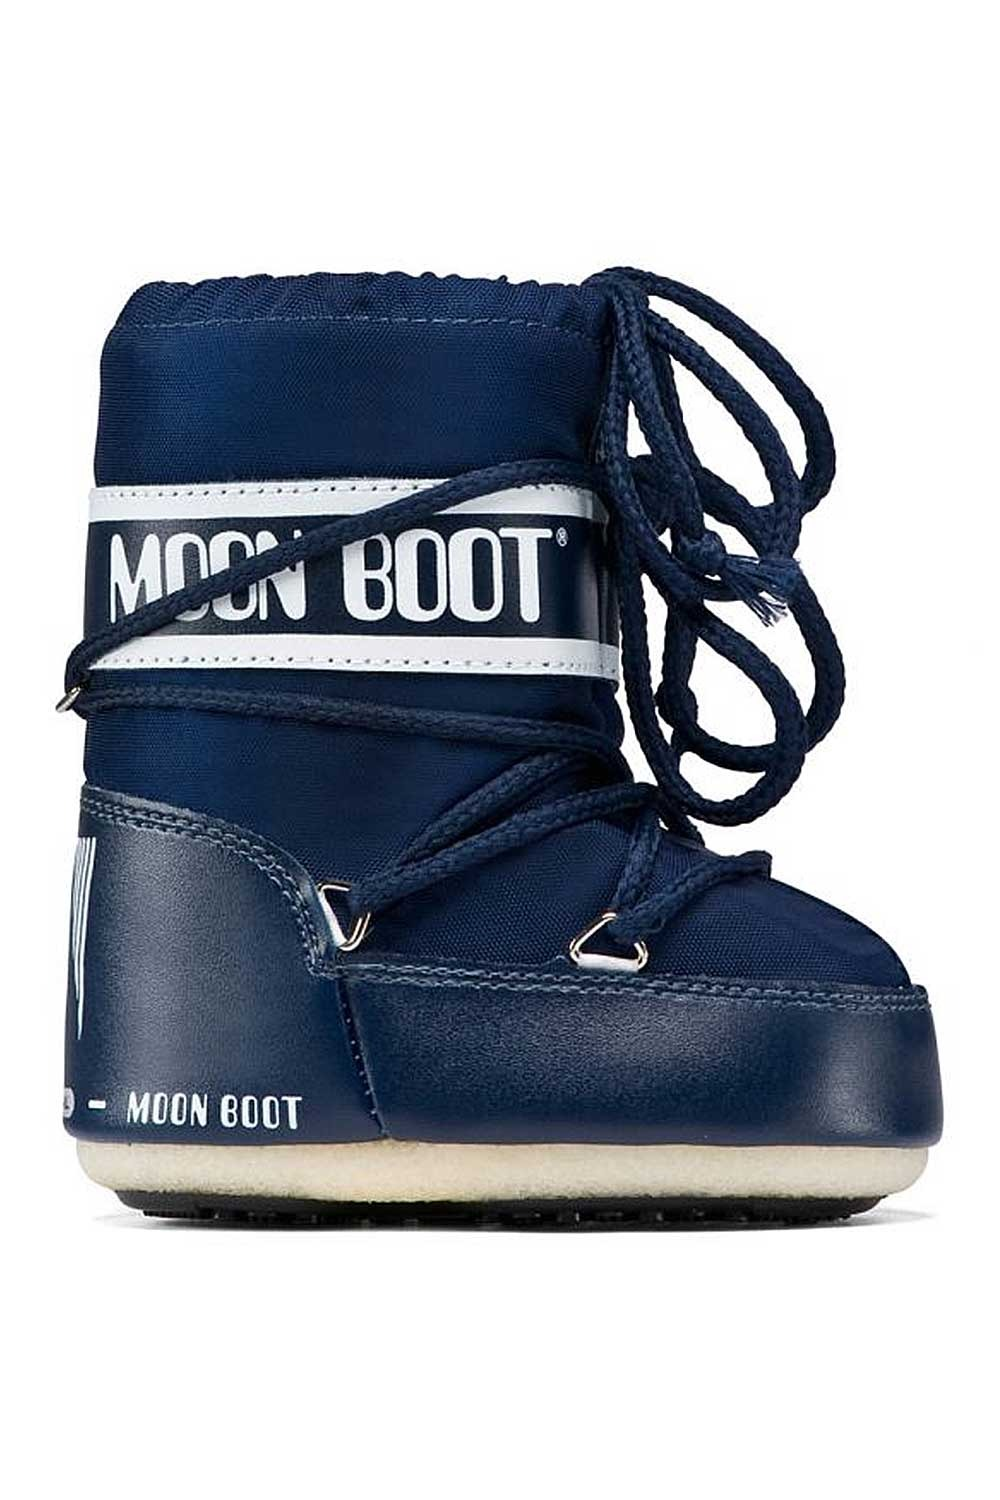 문부츠 키즈 방한부츠 미니 나일론_MOONBOOT YOUTH MOON BOOT MINI NYLON (120-145)_BLUE_VMQ879BU_AVMQ879BU